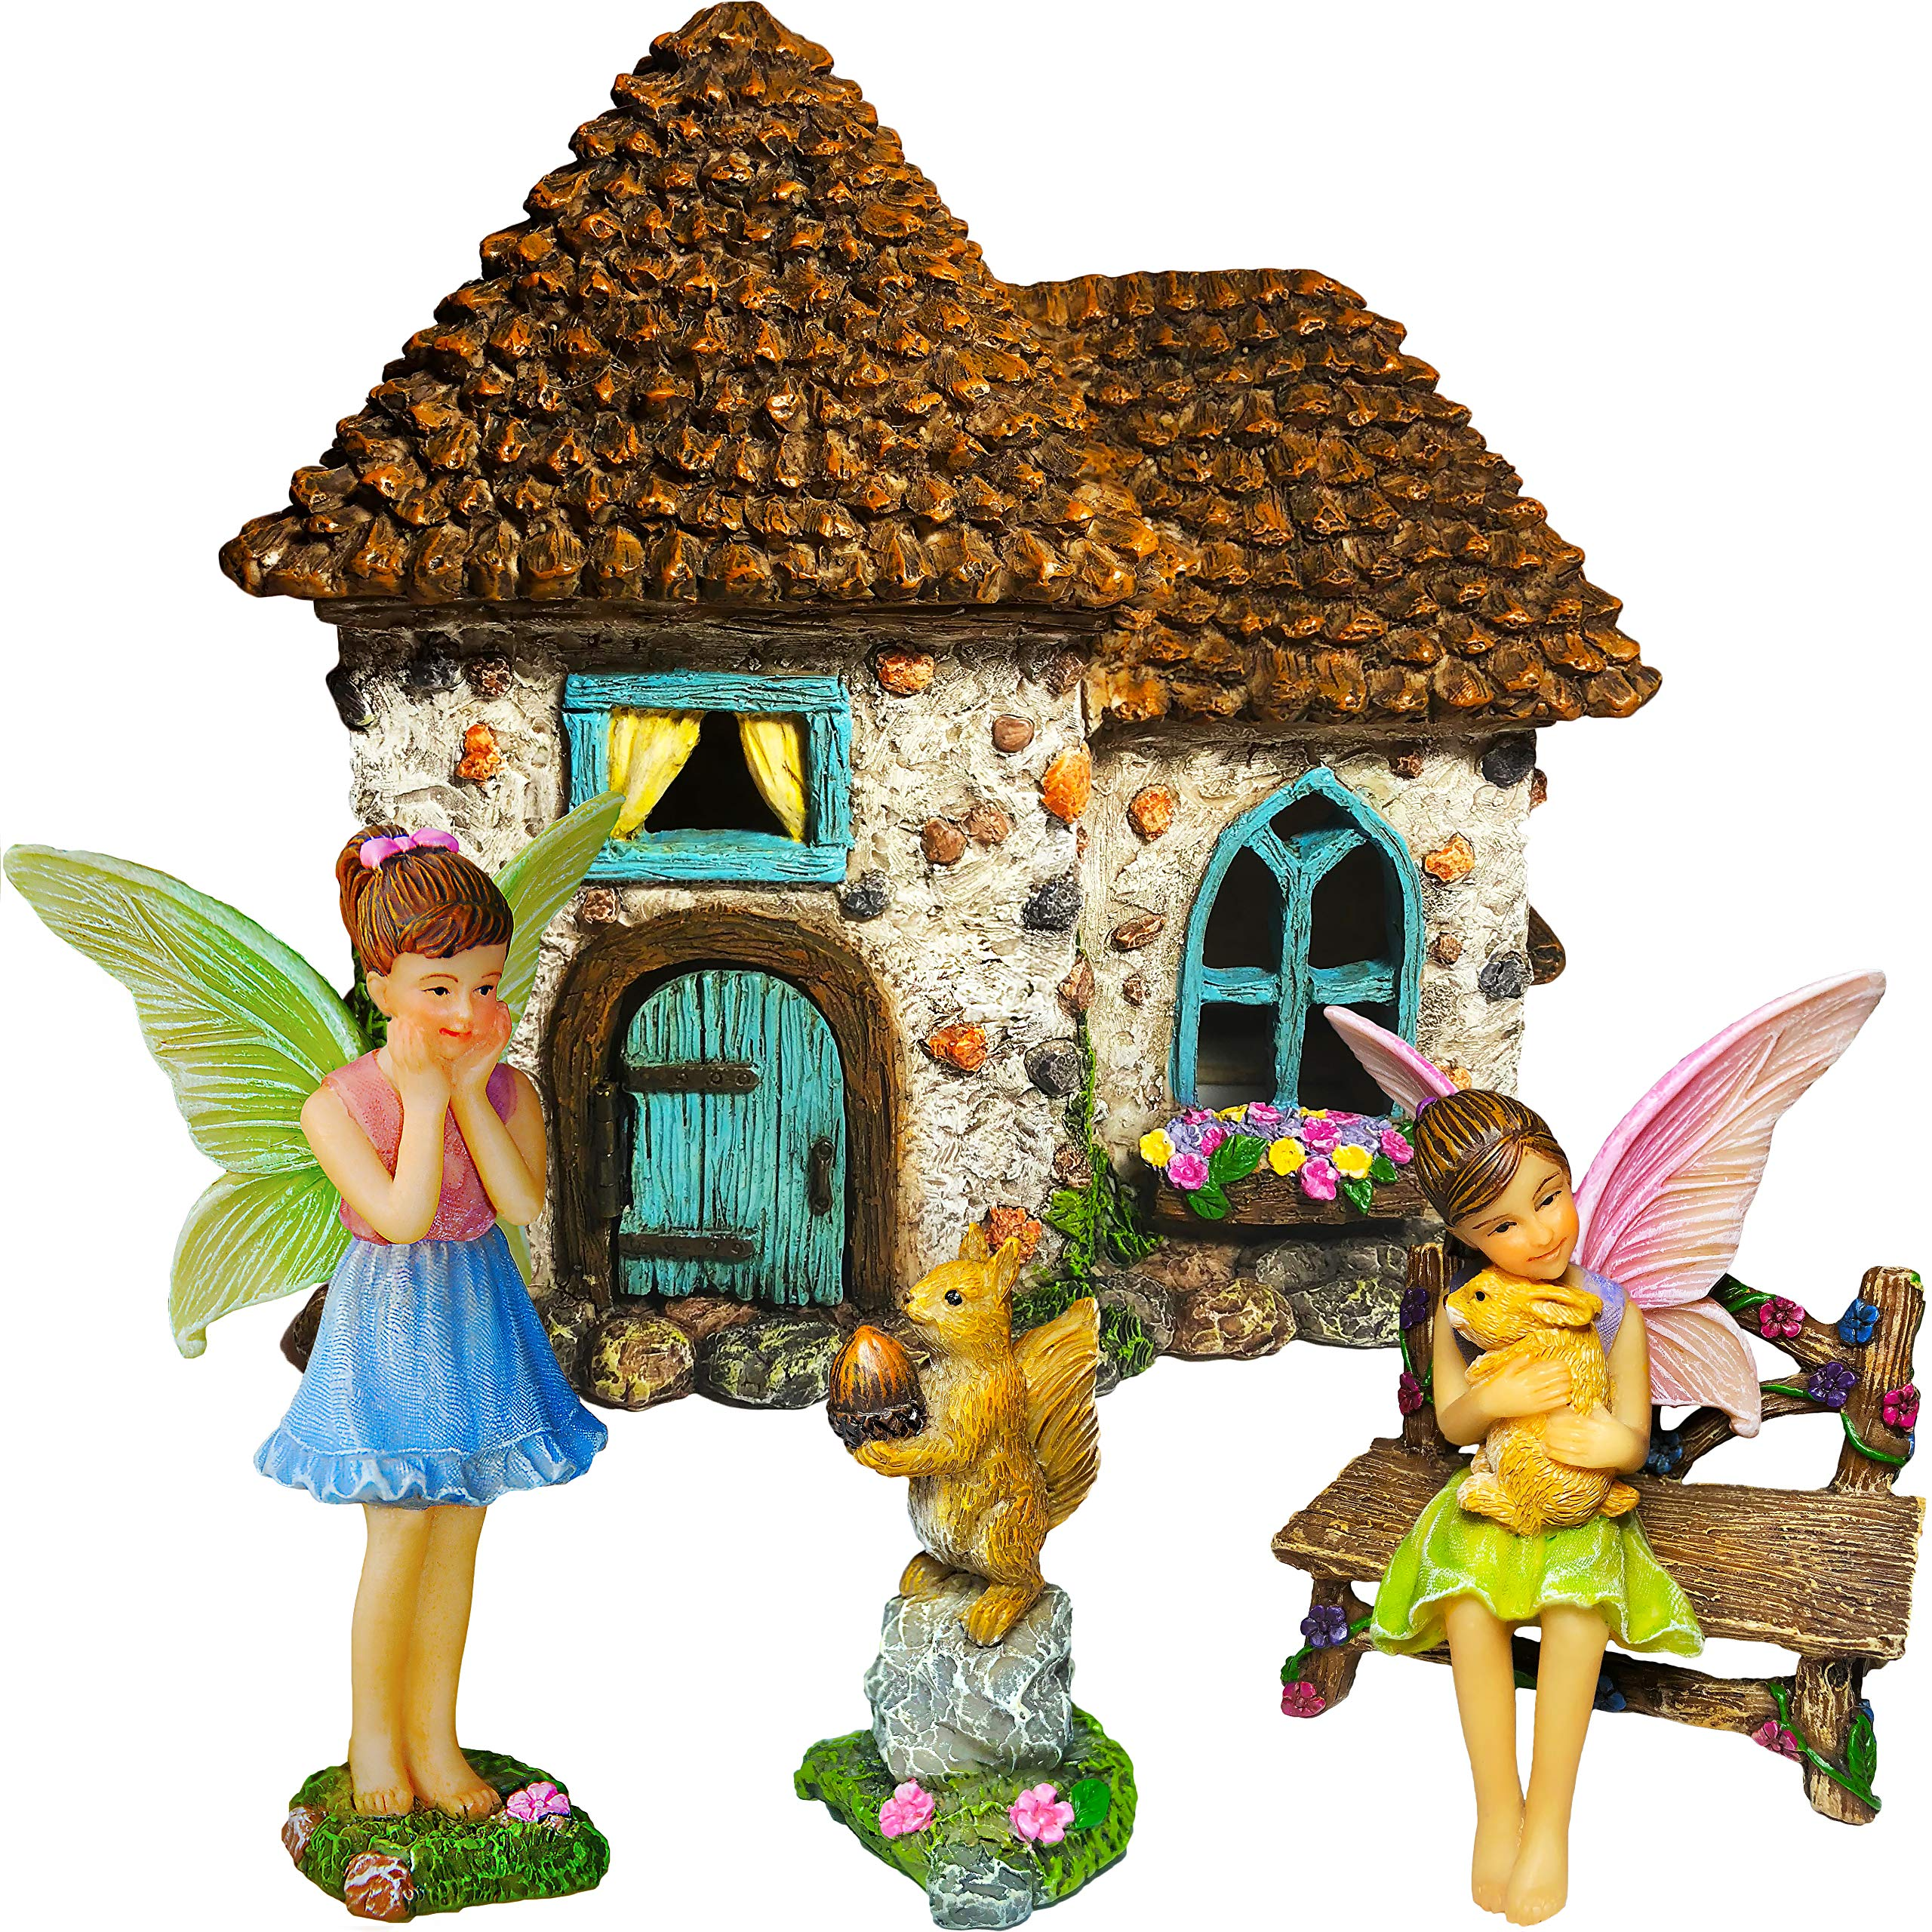 Mood Lab Fairy Garden Fairy House - Miniature Fairy Garden Figurines with Accessories - Set of 5 pcs - Hand Painted Set for Outdoor or House Decor